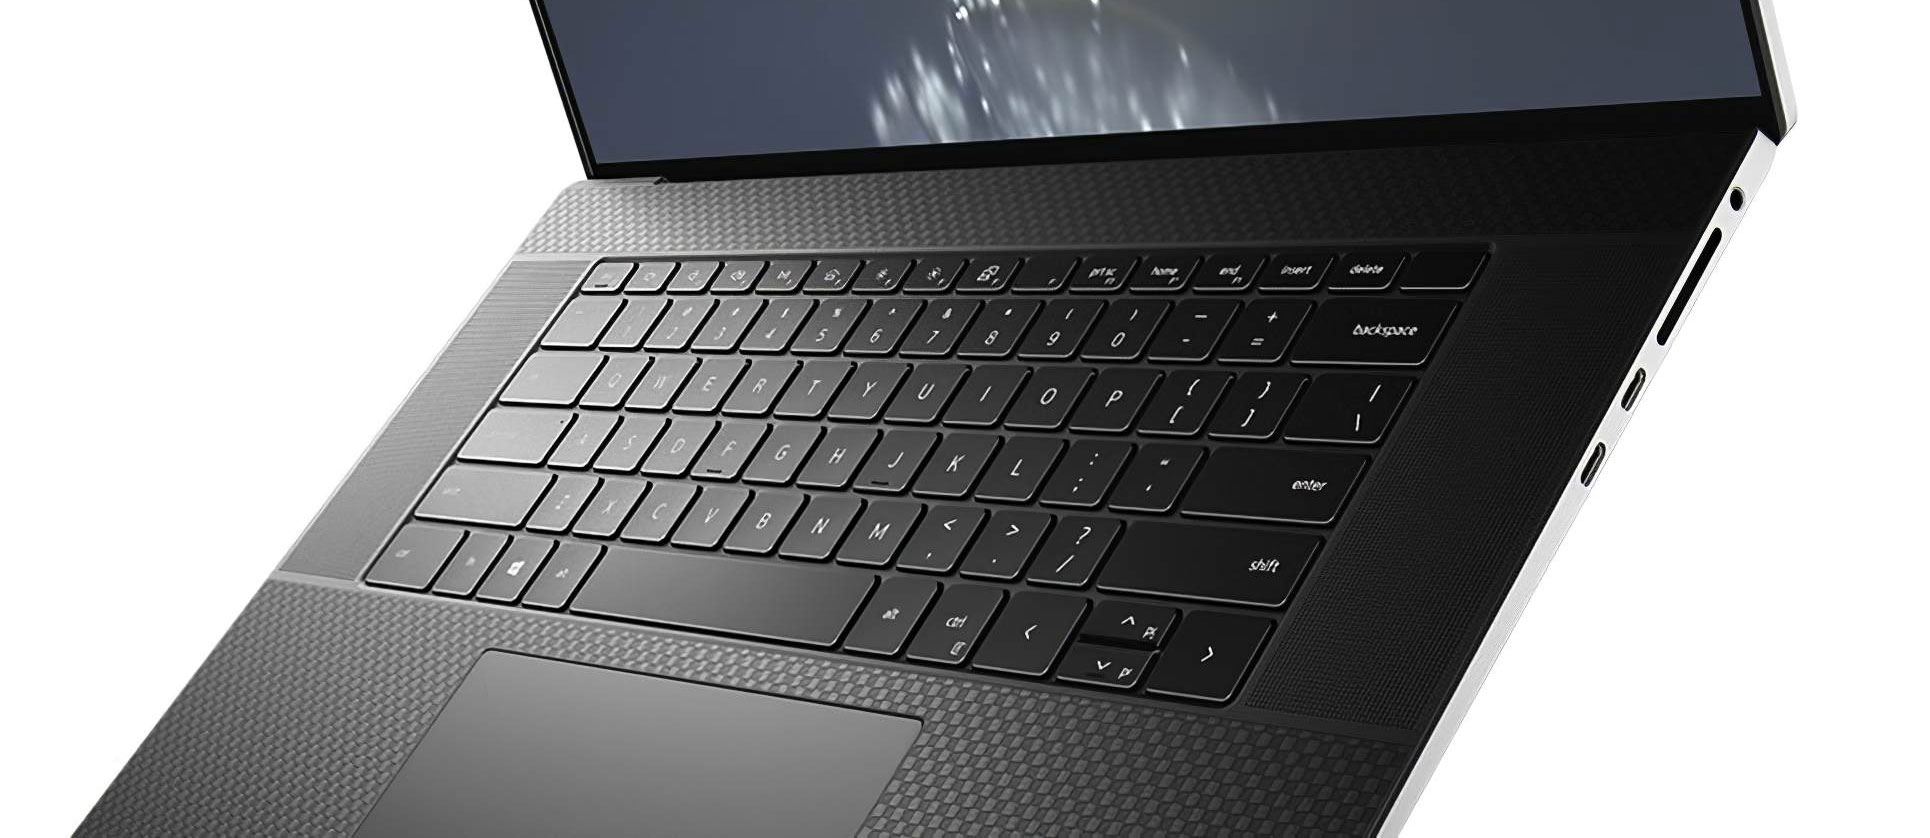 XPS 15/17 redesigned keyboard and clickpad